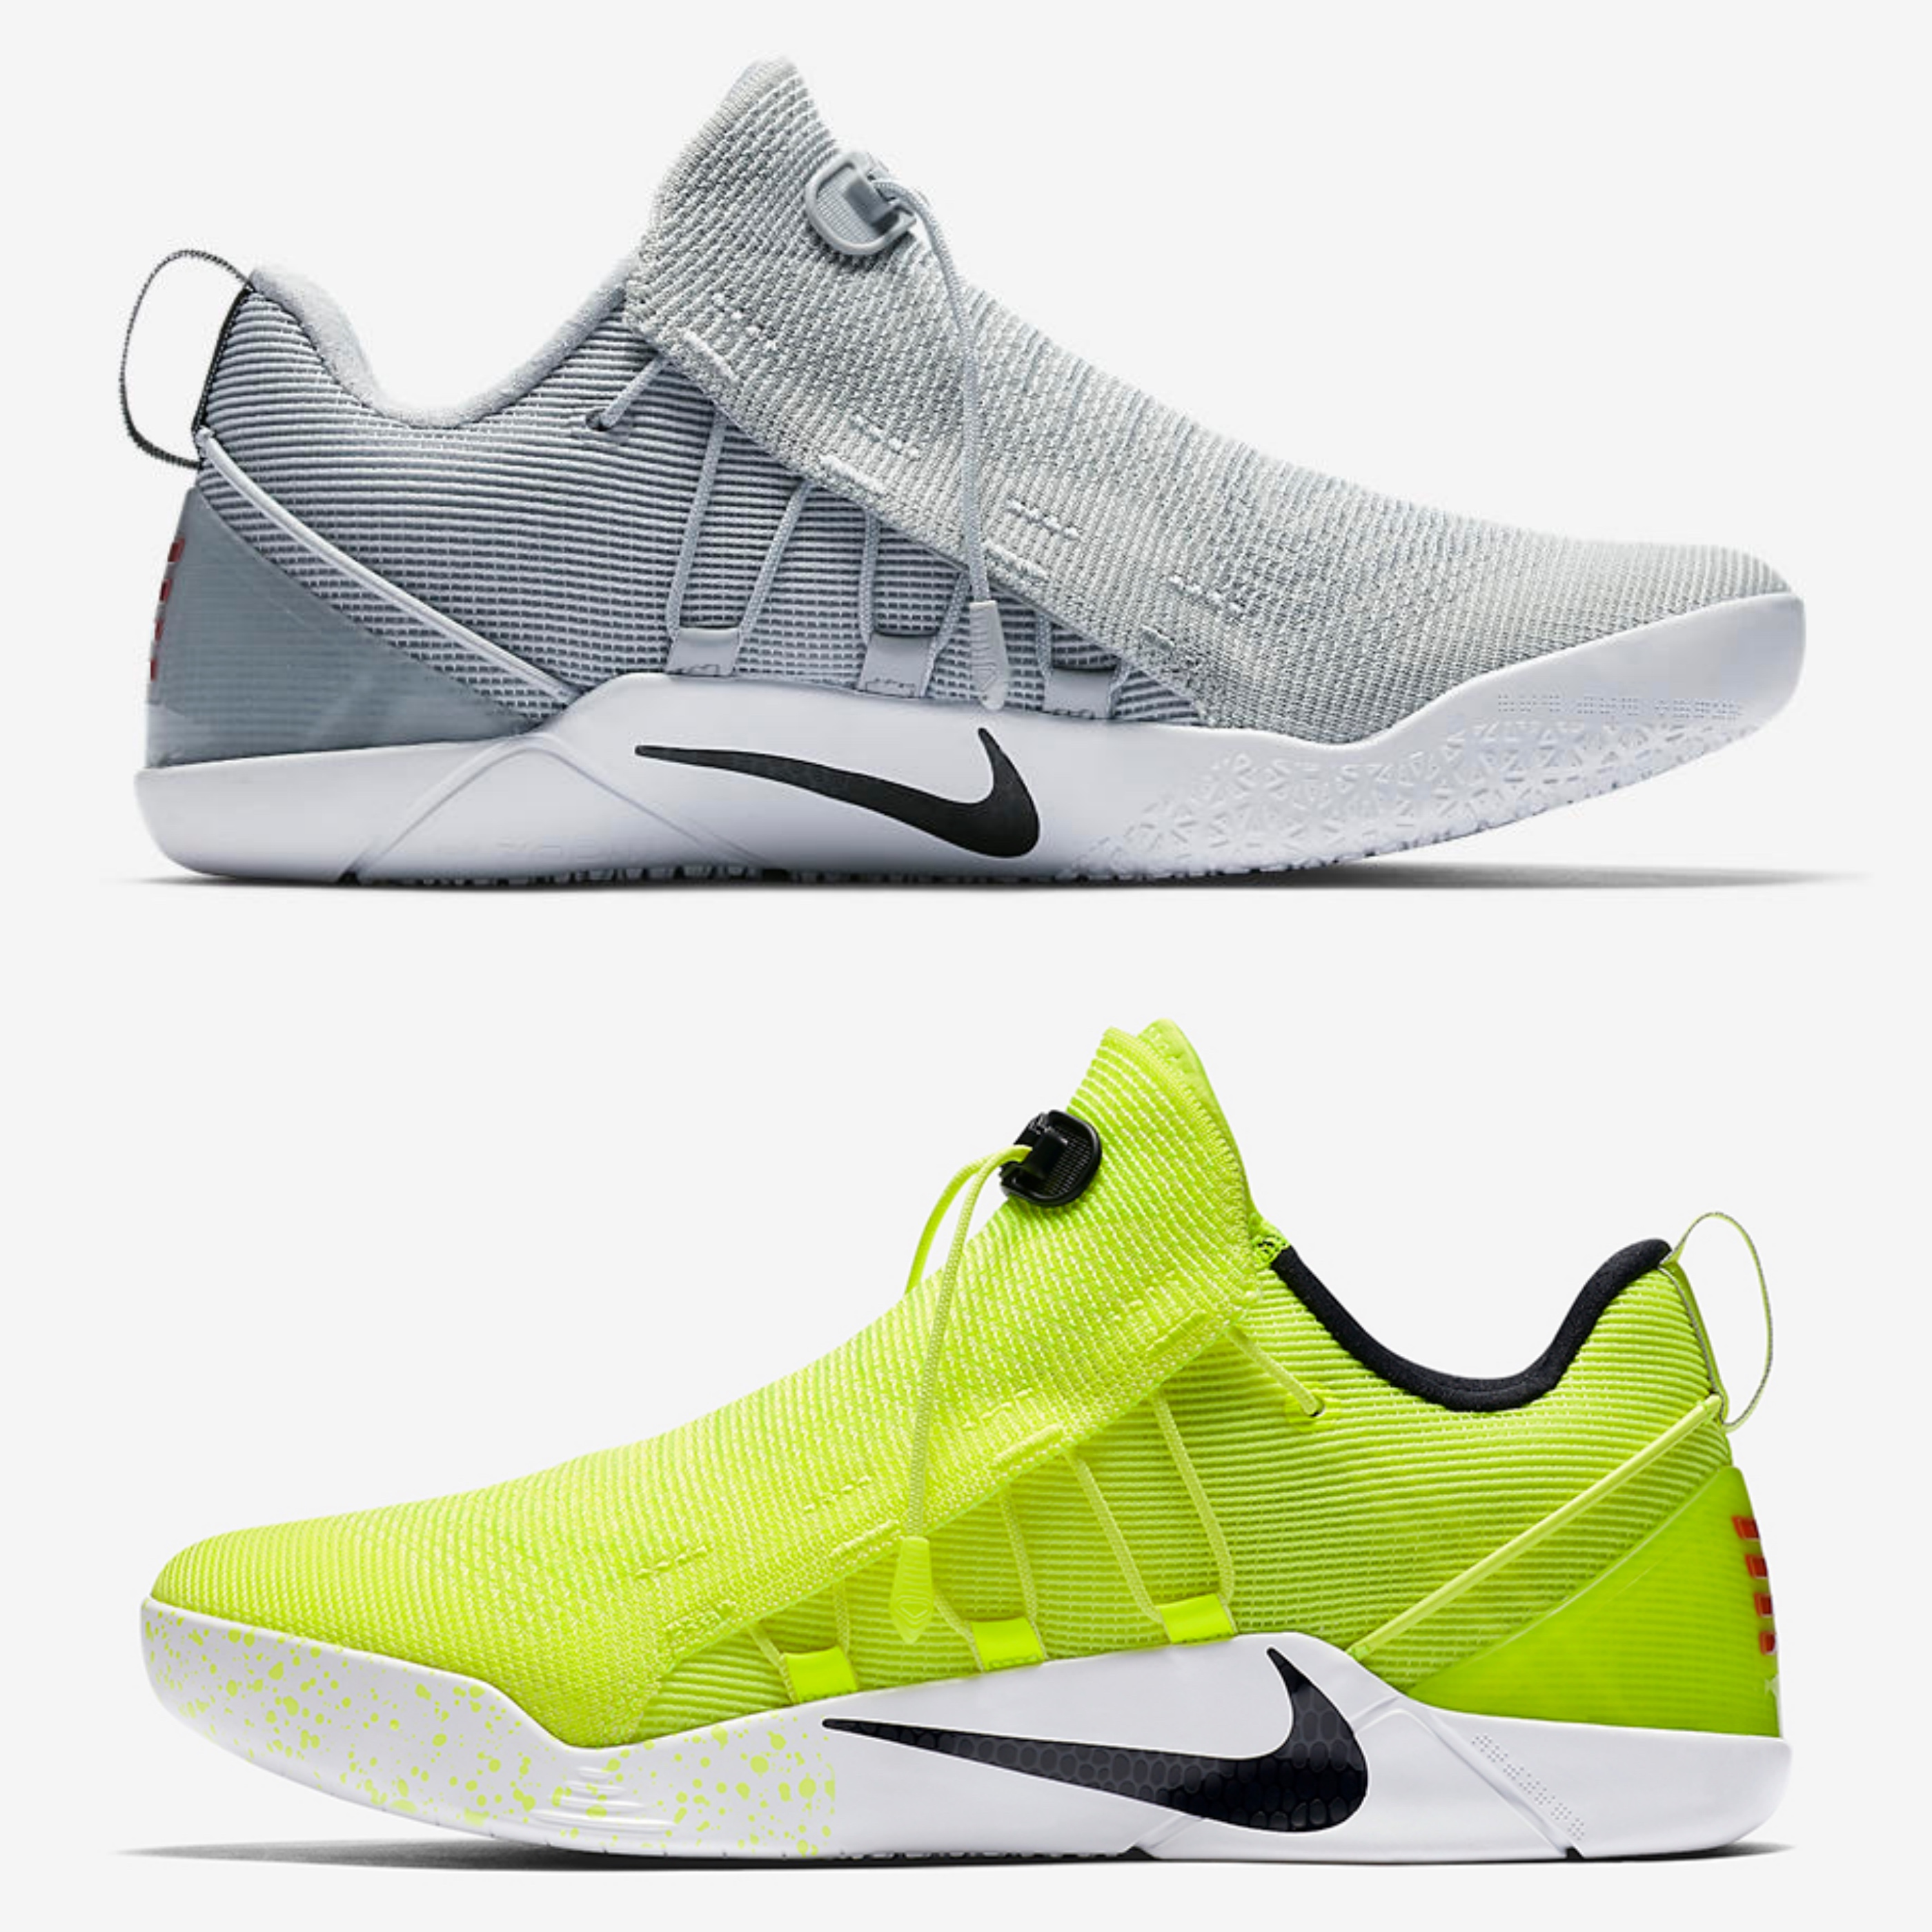 nike kobe ad nxt grey and volt